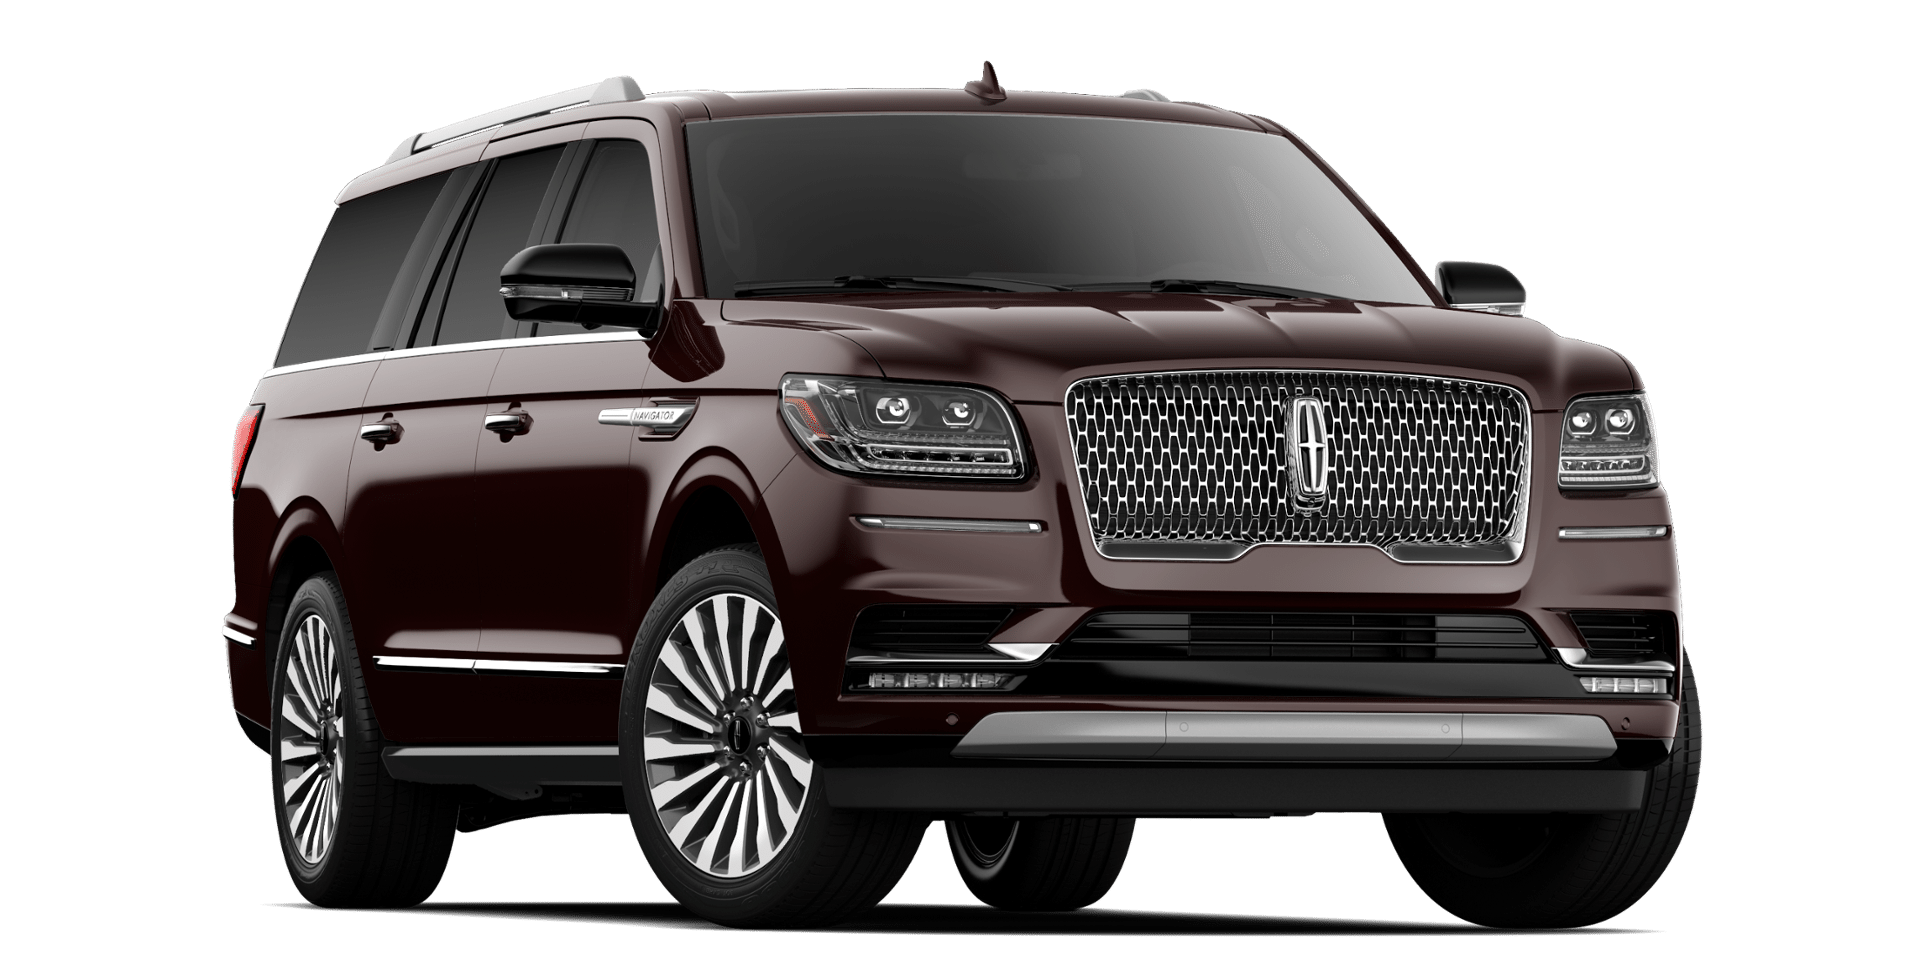 2018 Lincoln Navigator Build Price Forever Home Lincoln